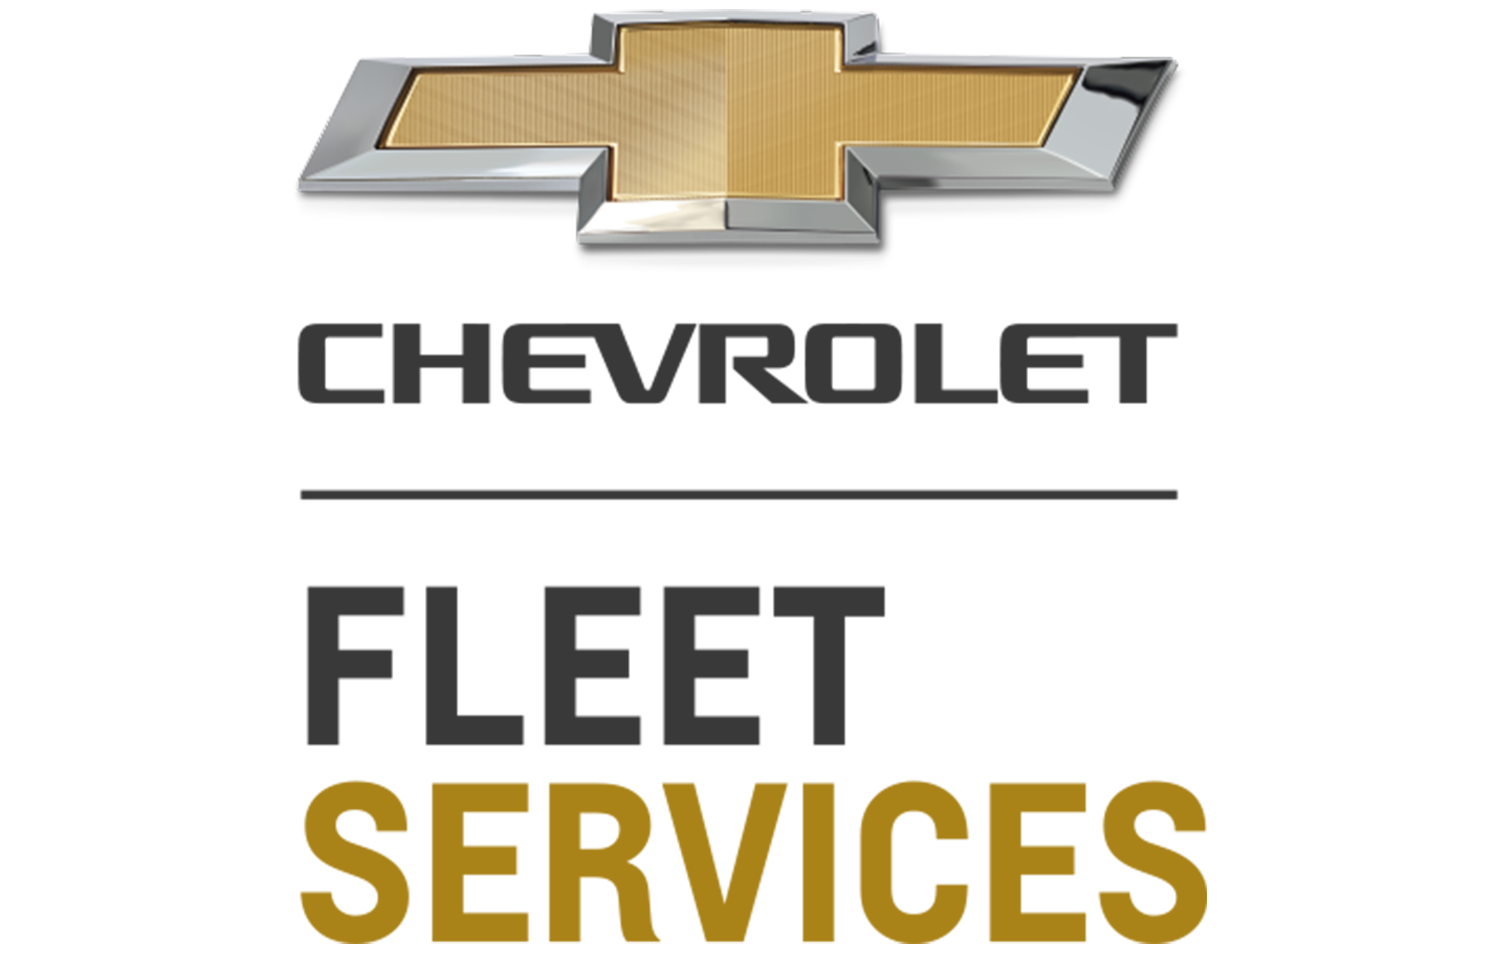 fleet-20services-reference-partial.svg